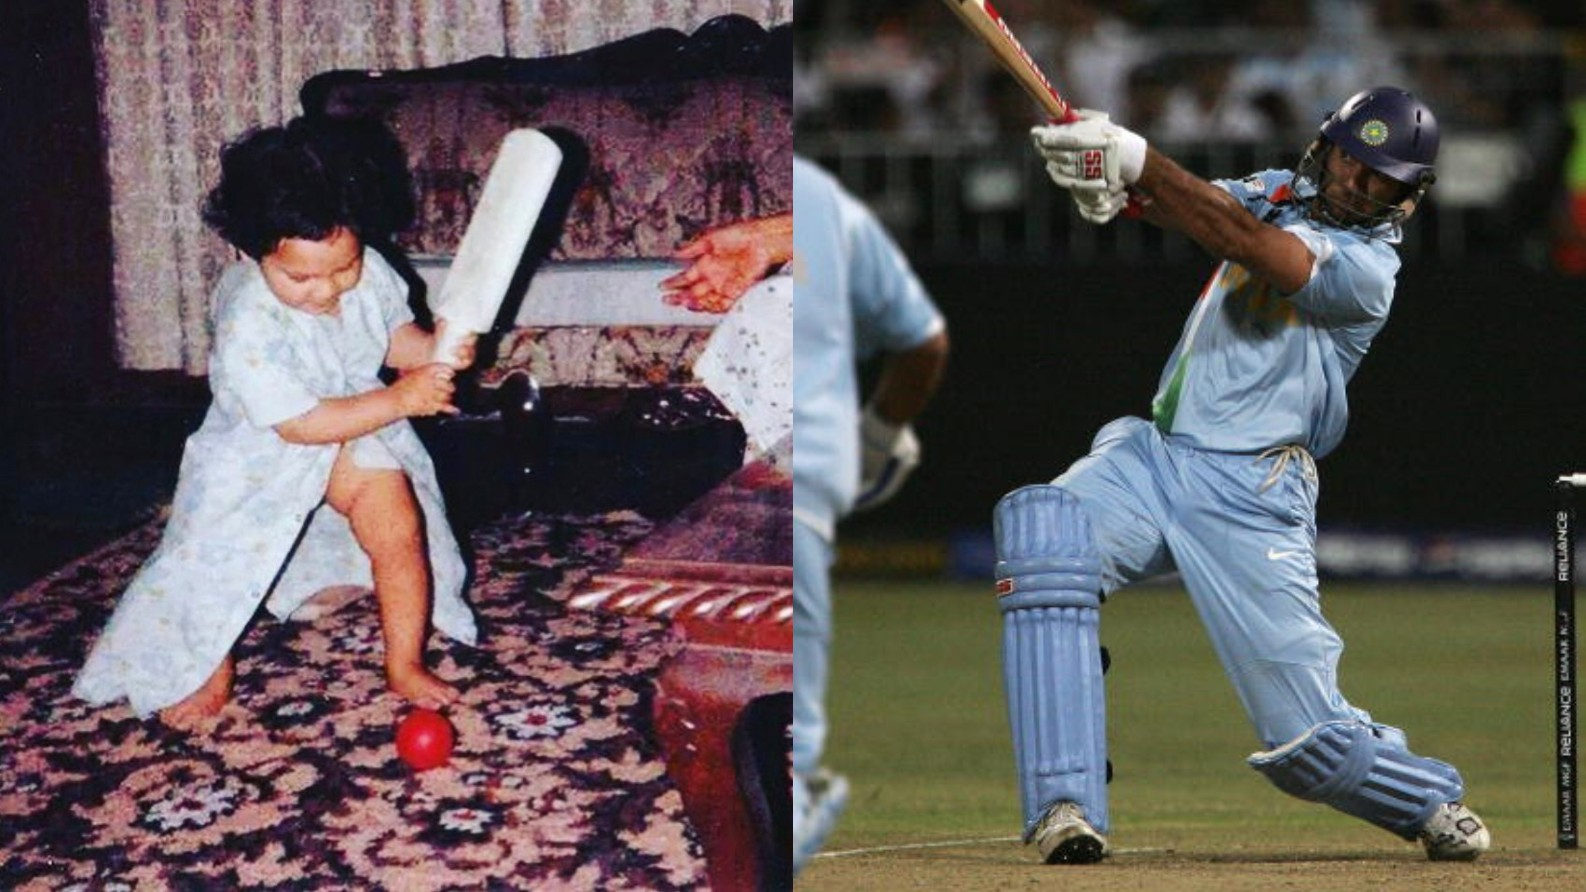 Yuvraj Singh posts an adorable picture on the 12th anniversary of his 6 sixes off Stuart Broad